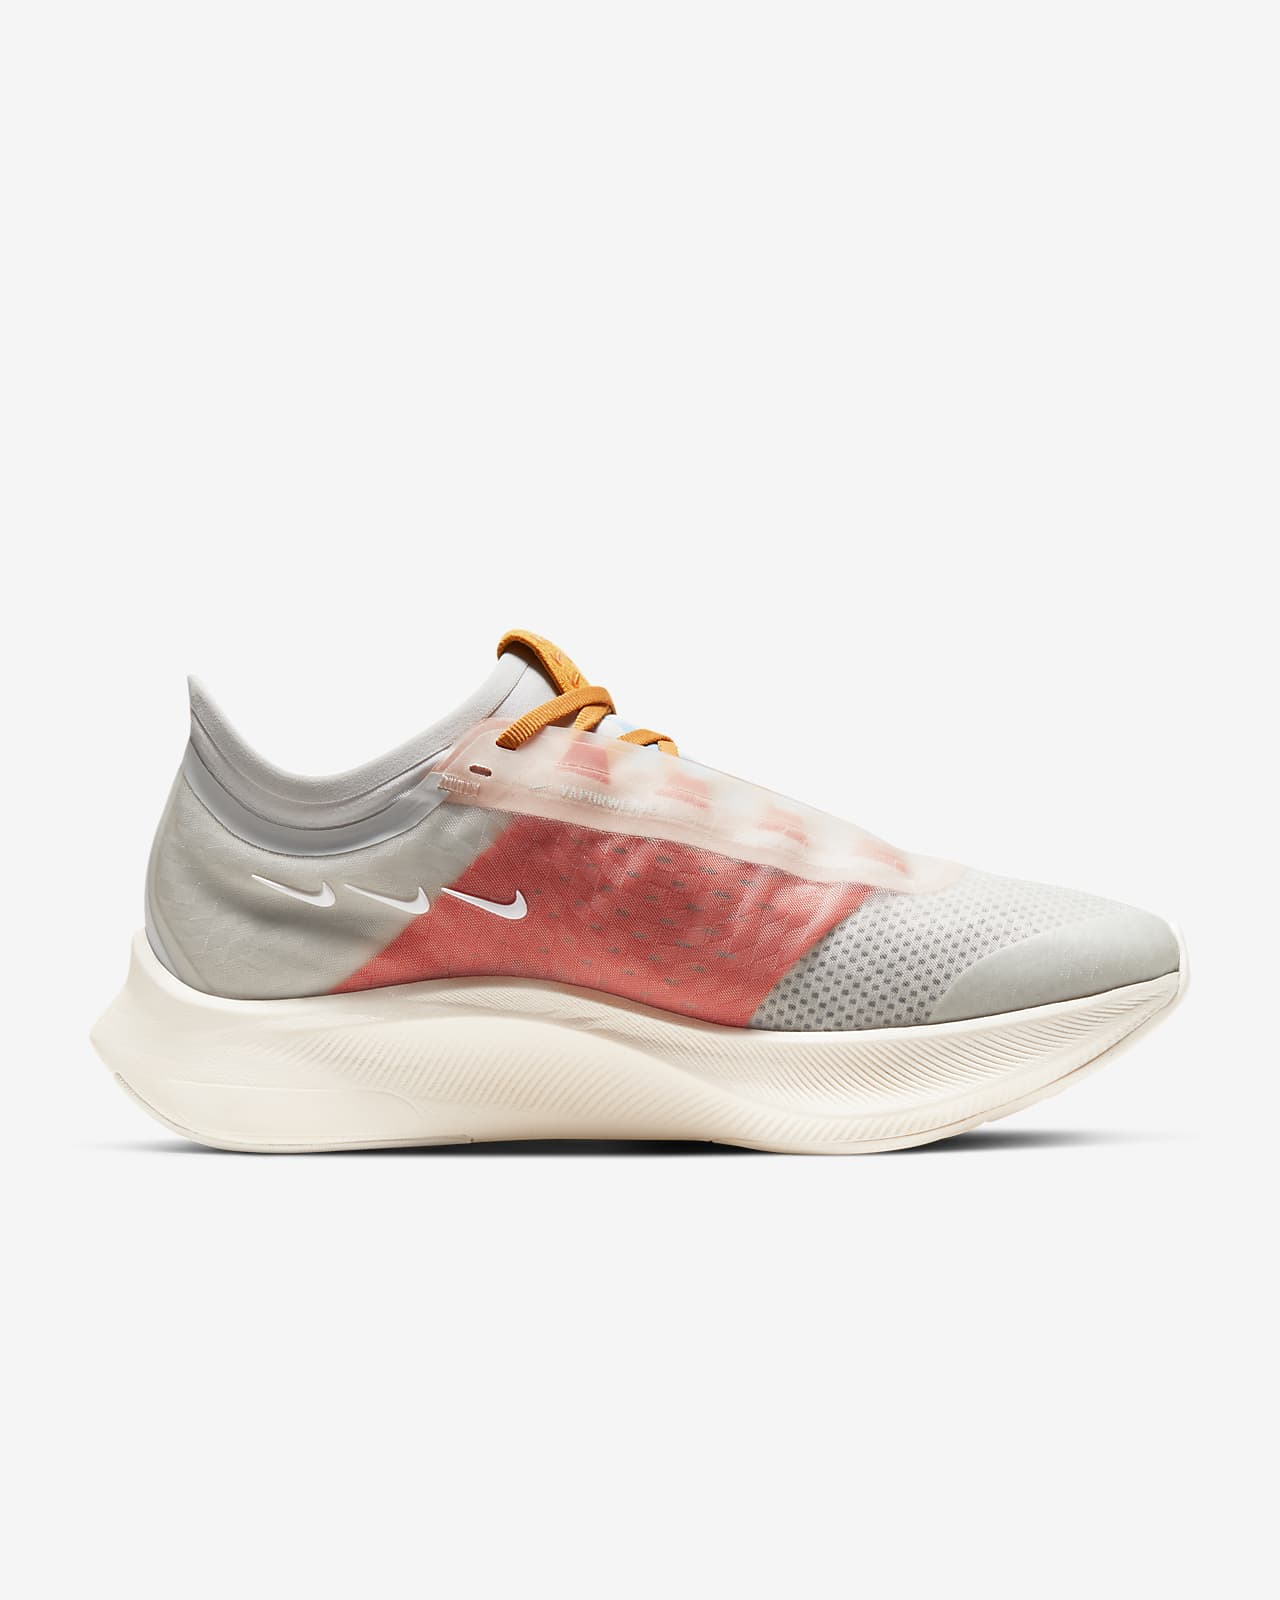 Chaussure de running Nike Zoom Fly 3 Premium pour Femme